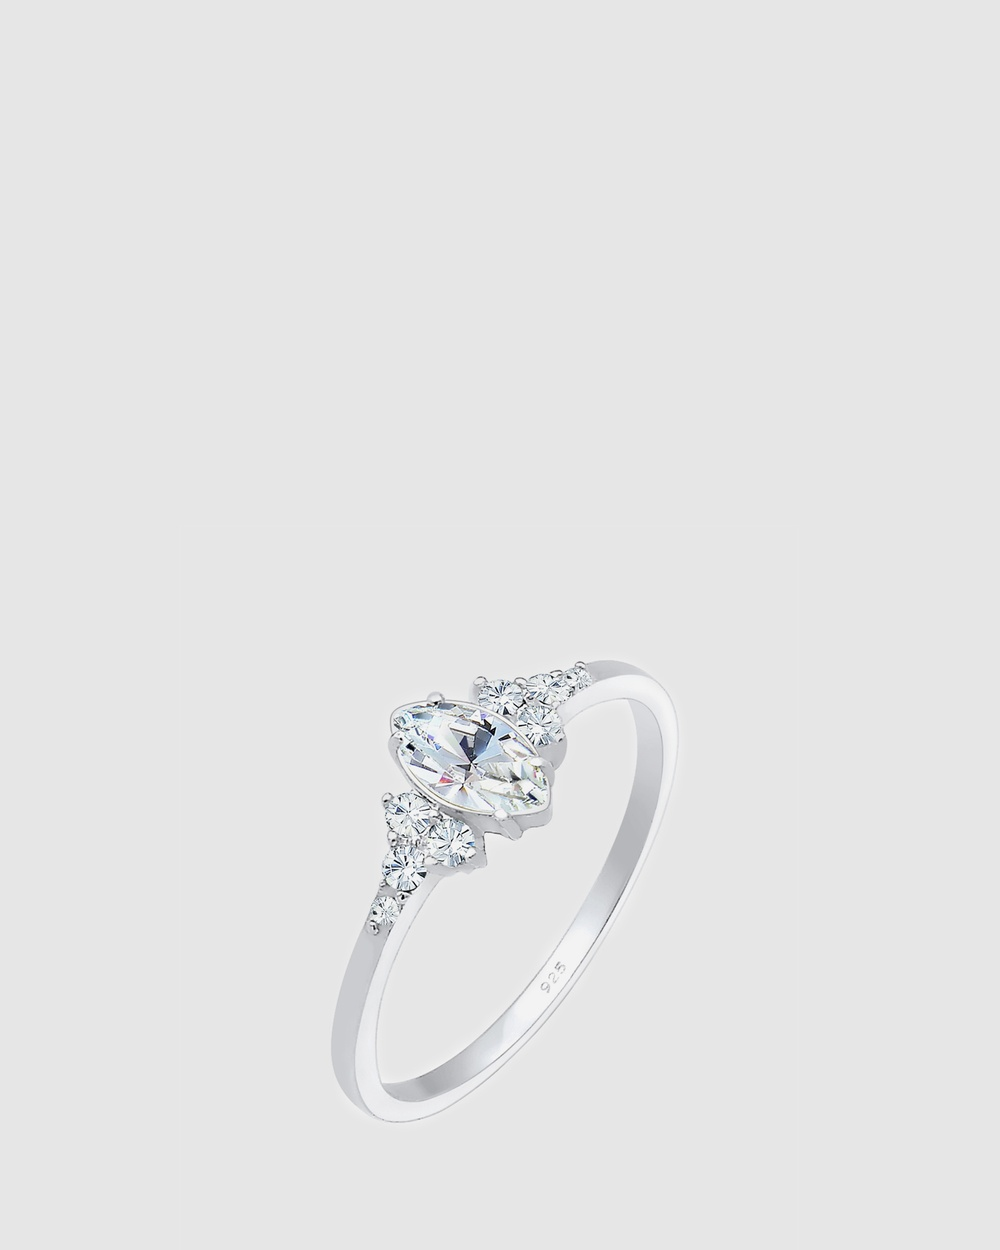 Elli Jewelry Ring Elegant Engagement Valentin Crystals 925 Sterling Silver Jewellery Silver